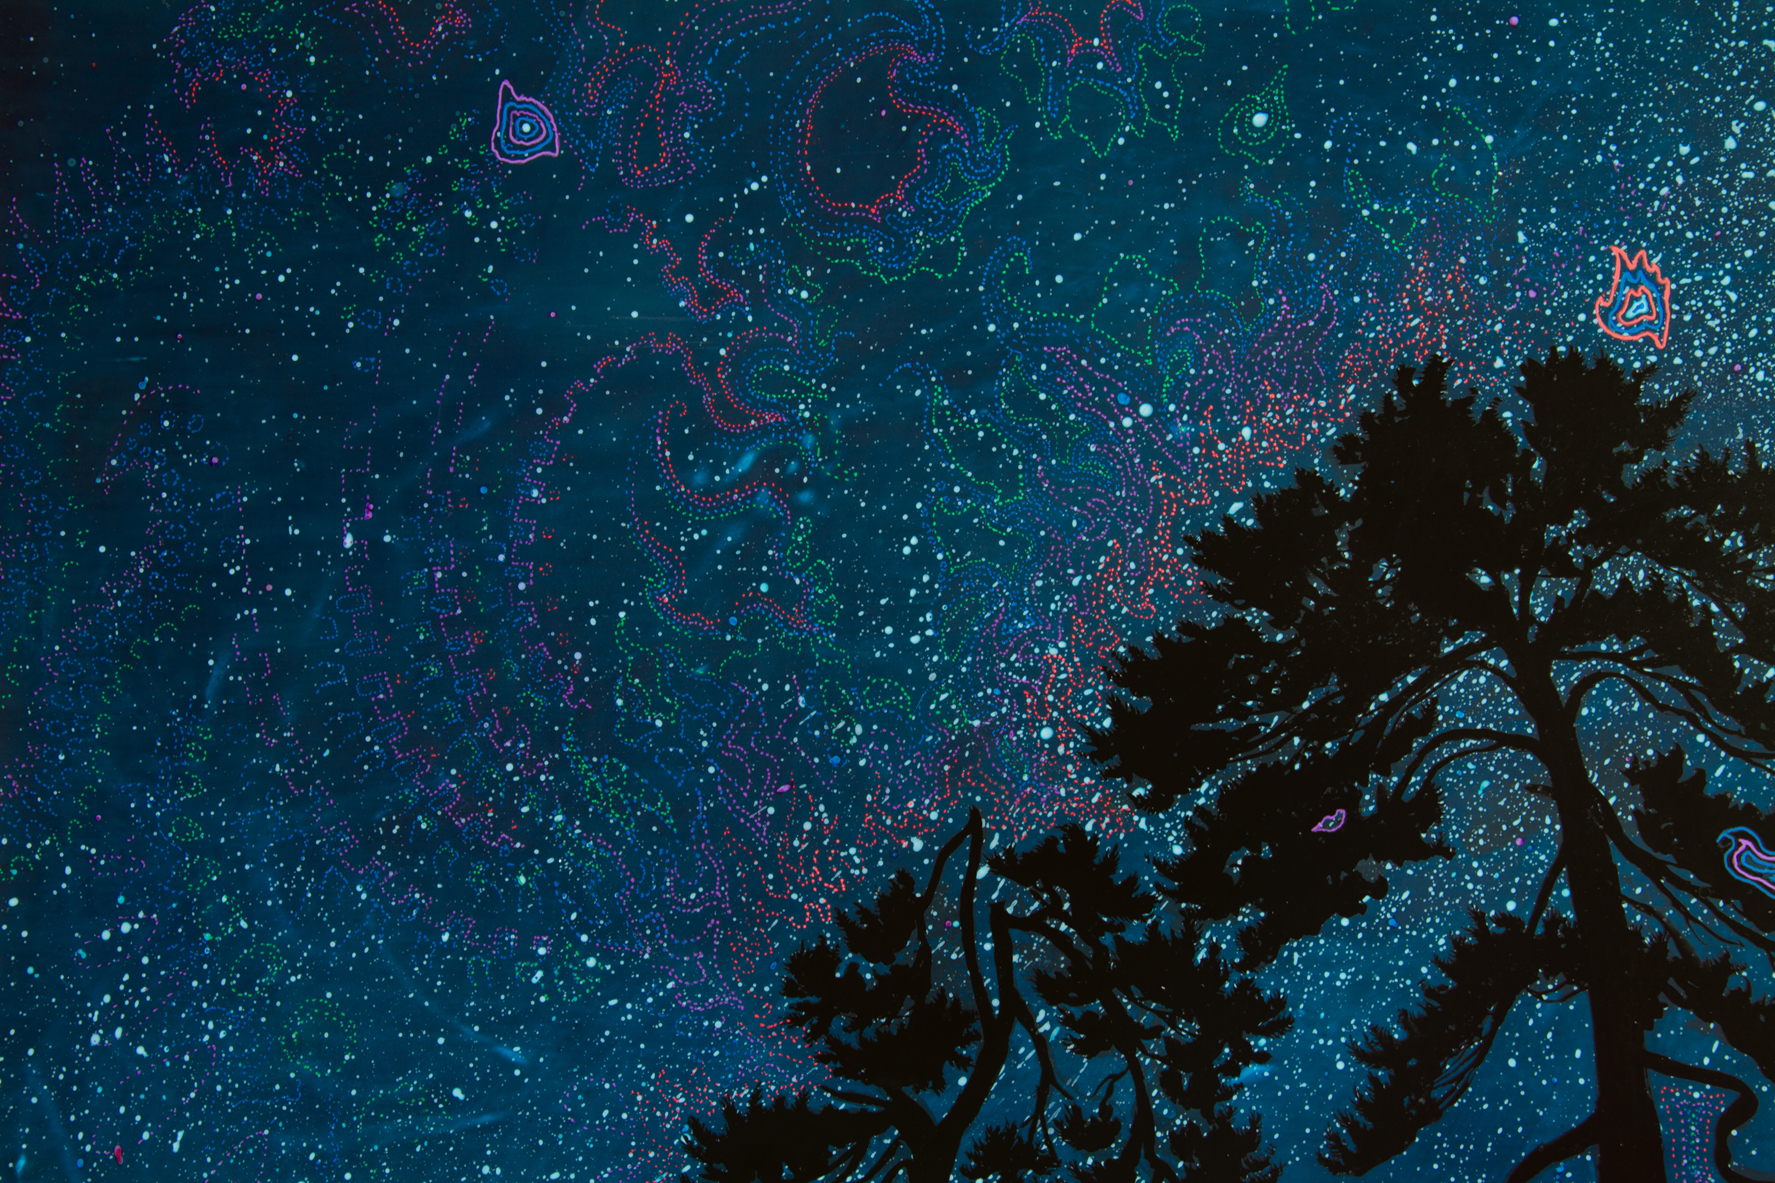 Astral Abyss detail